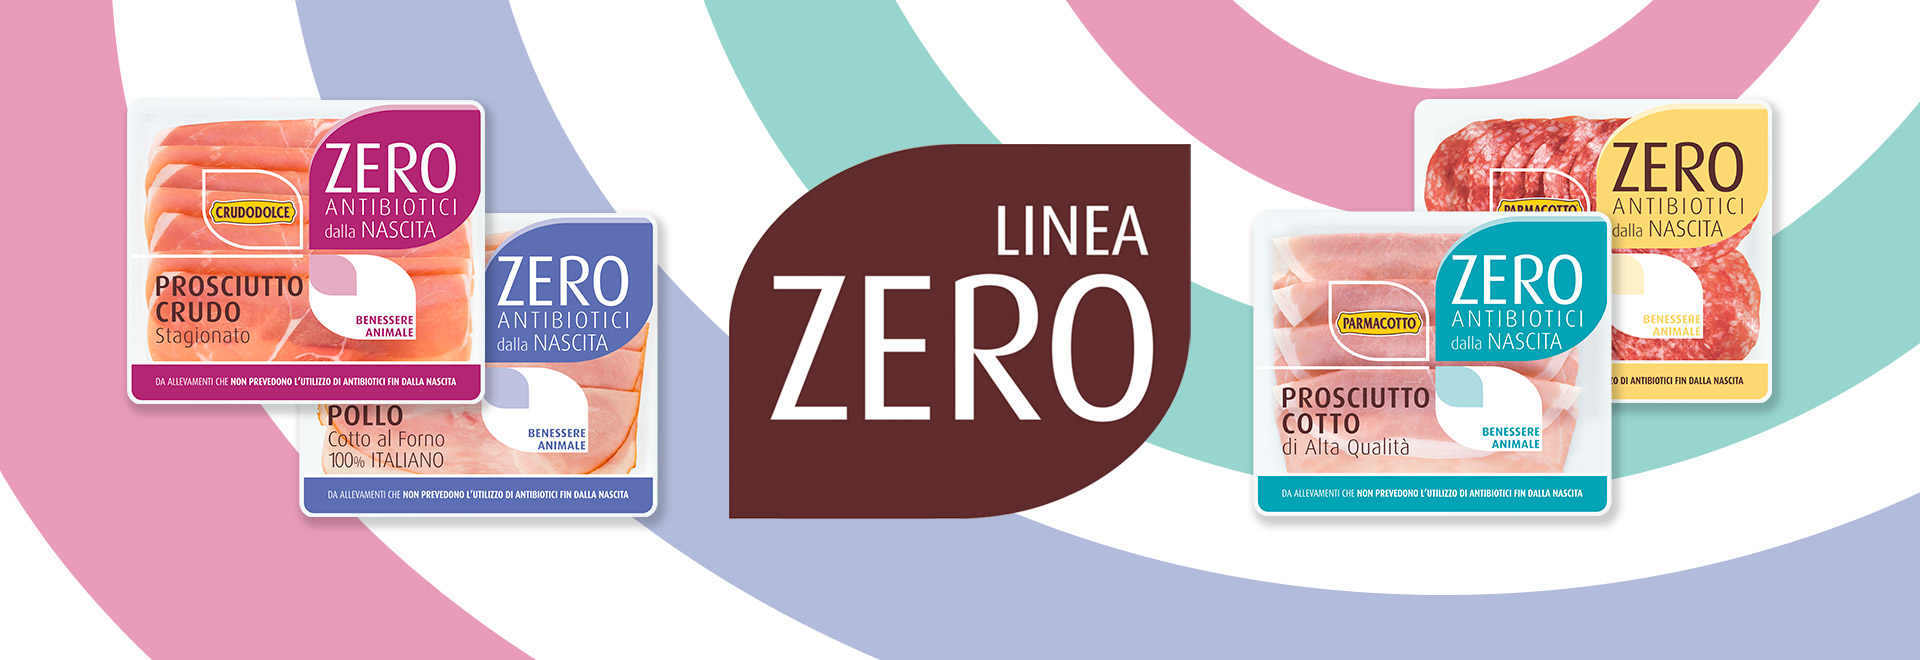 Discover the Linea Zero - from farms that do not use antibiotics since birth